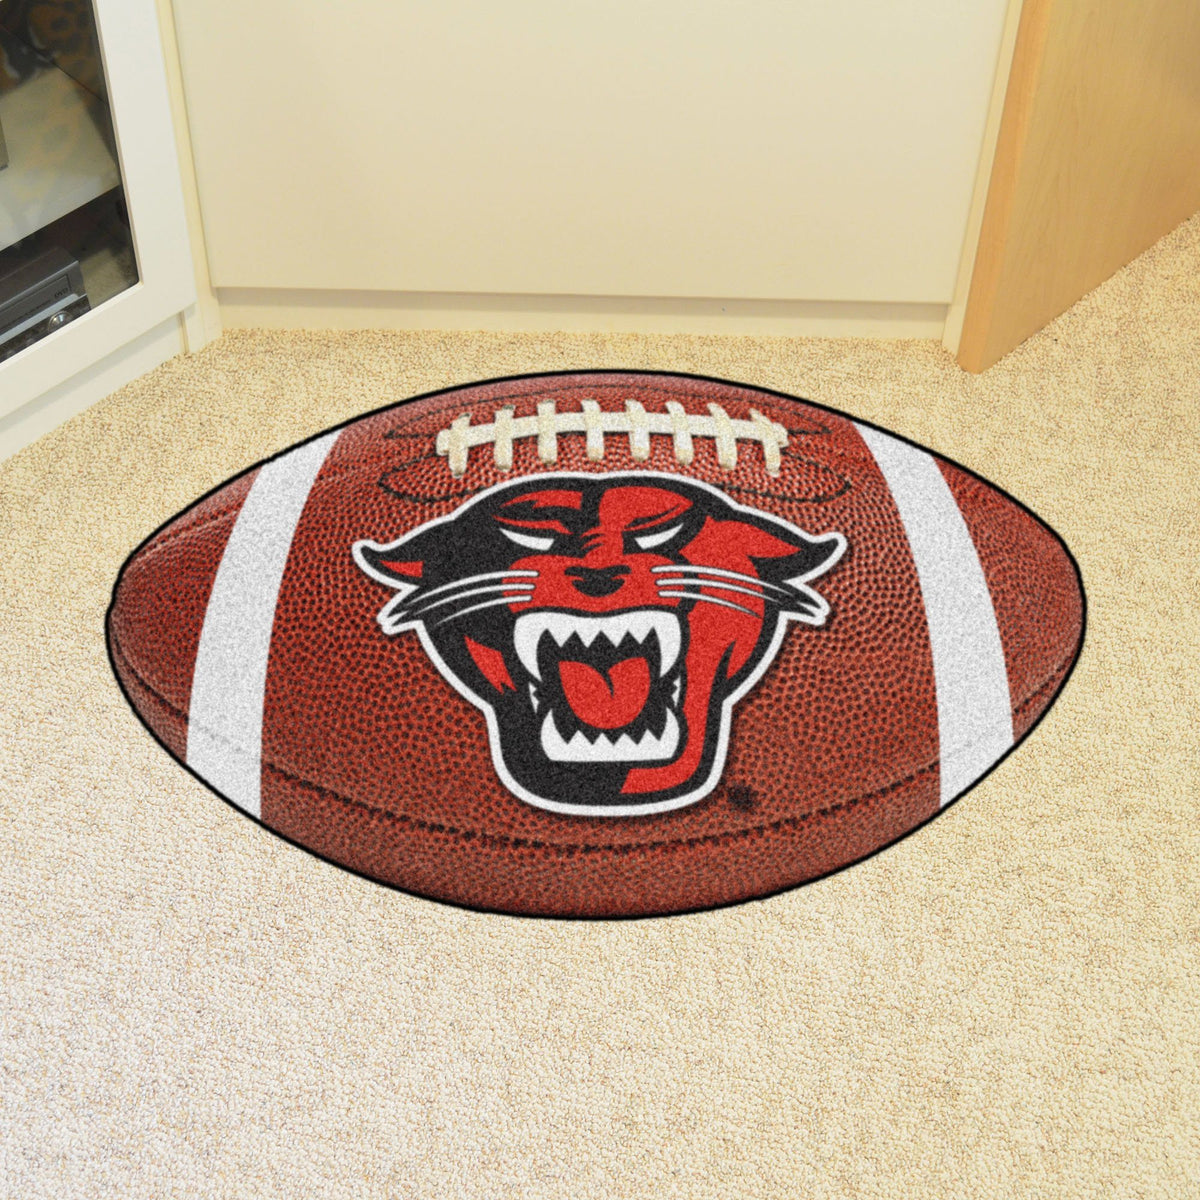 Collegiate - Football Mat: A - K Collegiate Mats, Rectangular Mats, Football Mat, Collegiate, Home Fan Mats Davenport